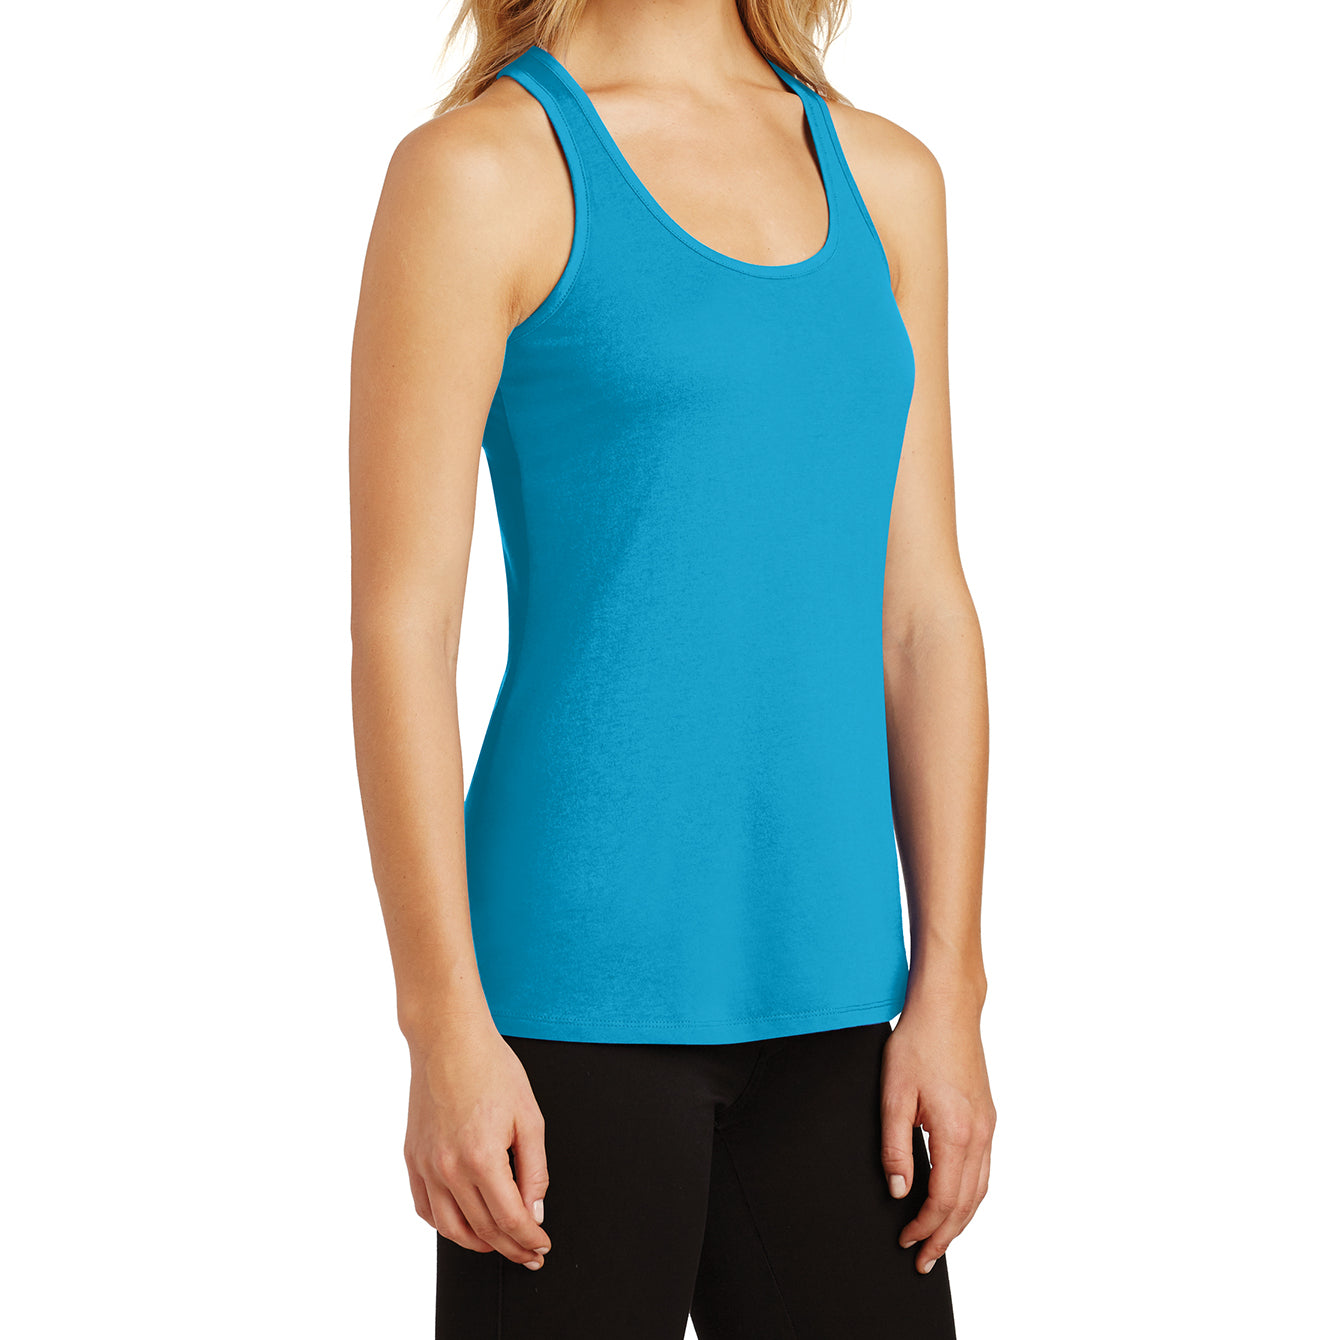 Womens Solid Gathered RacerSide Tank - Light Turquoise - Side